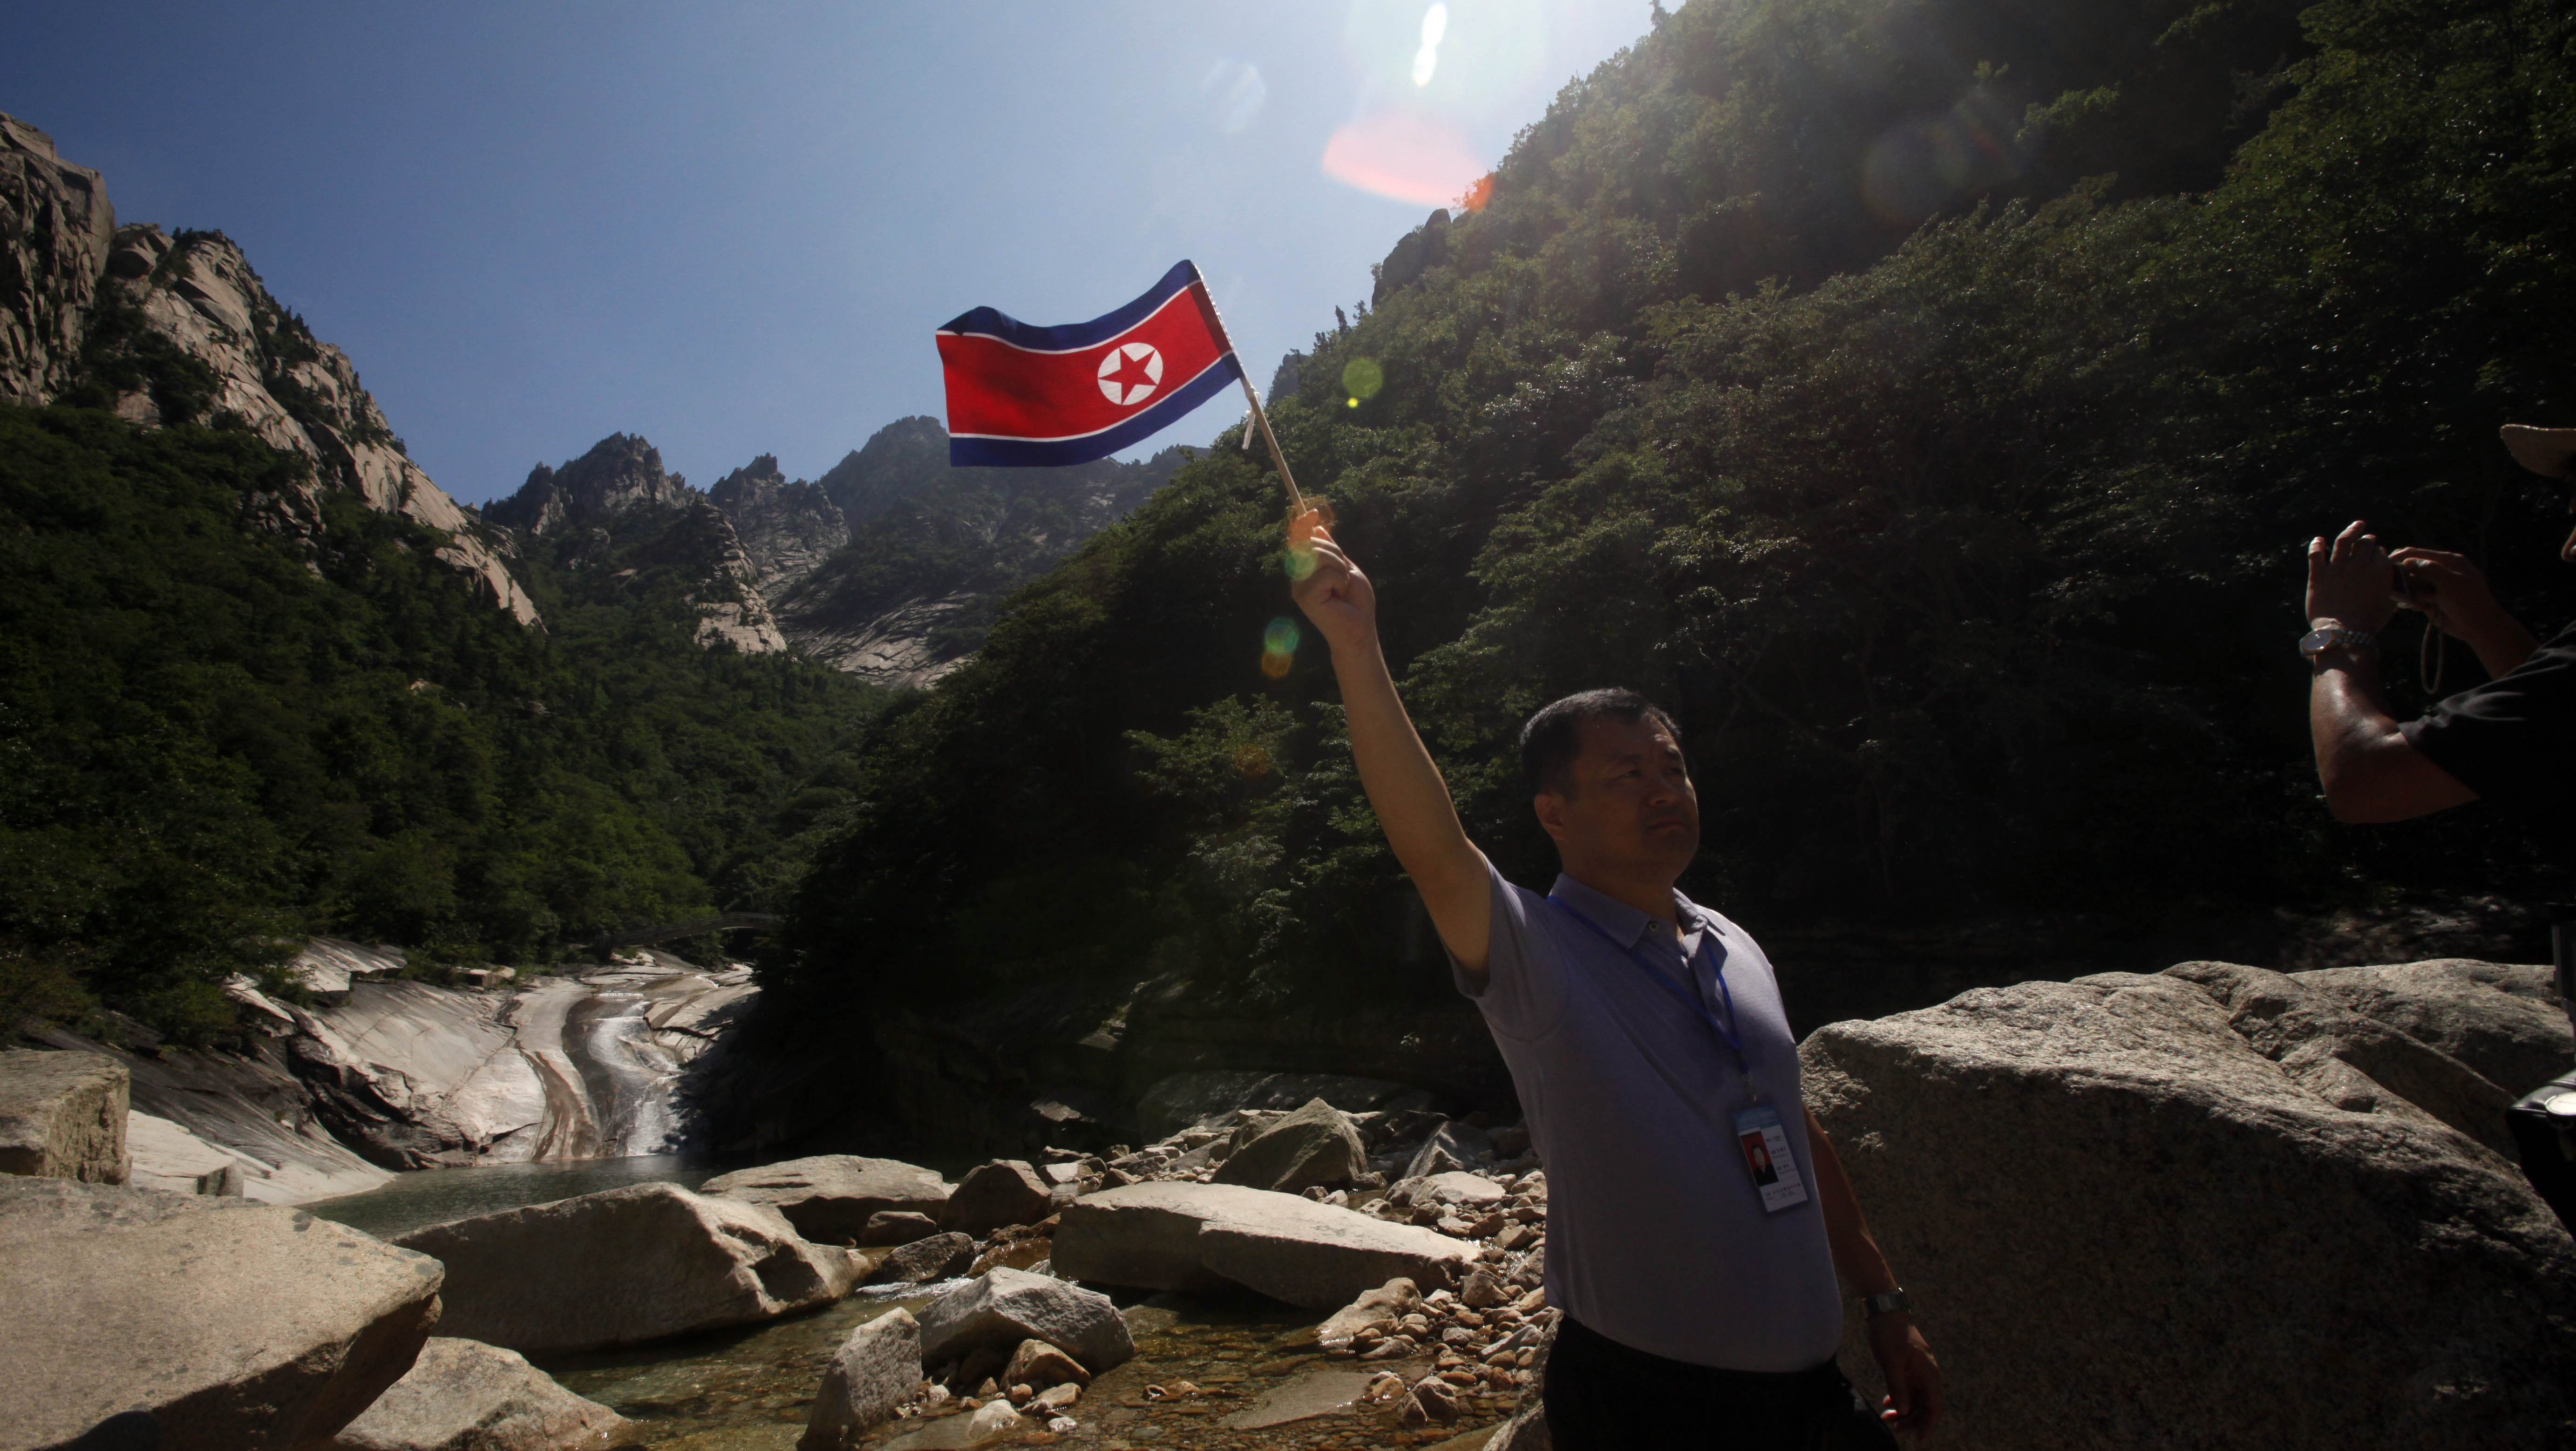 A Chinese tourist poses with a North Korean flag as he visits Mount Kumgang in North Korea, Wednesday, Aug. 31, 2011. Since South Korean tourists have been barred from the luxury resort, known abroad as Diamond Mountain, North Korea has begun courting Chinese and other international tourists. (AP Photo/Ng Han Guan)